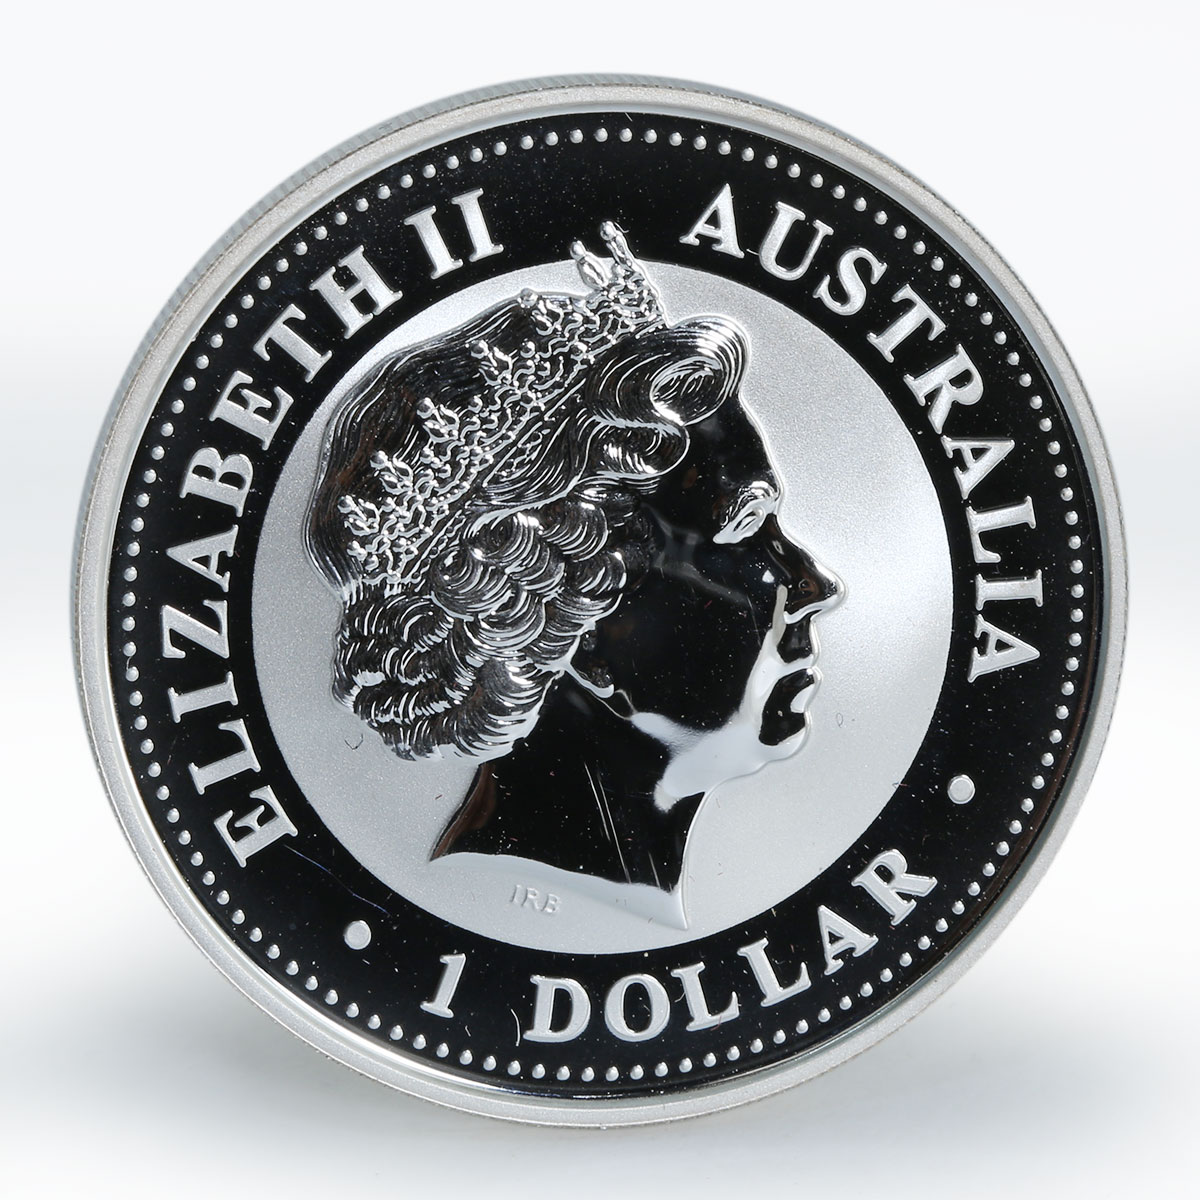 Australia $1 Year of the Monkey Lunar Series I 1 Oz Silver coin 2004